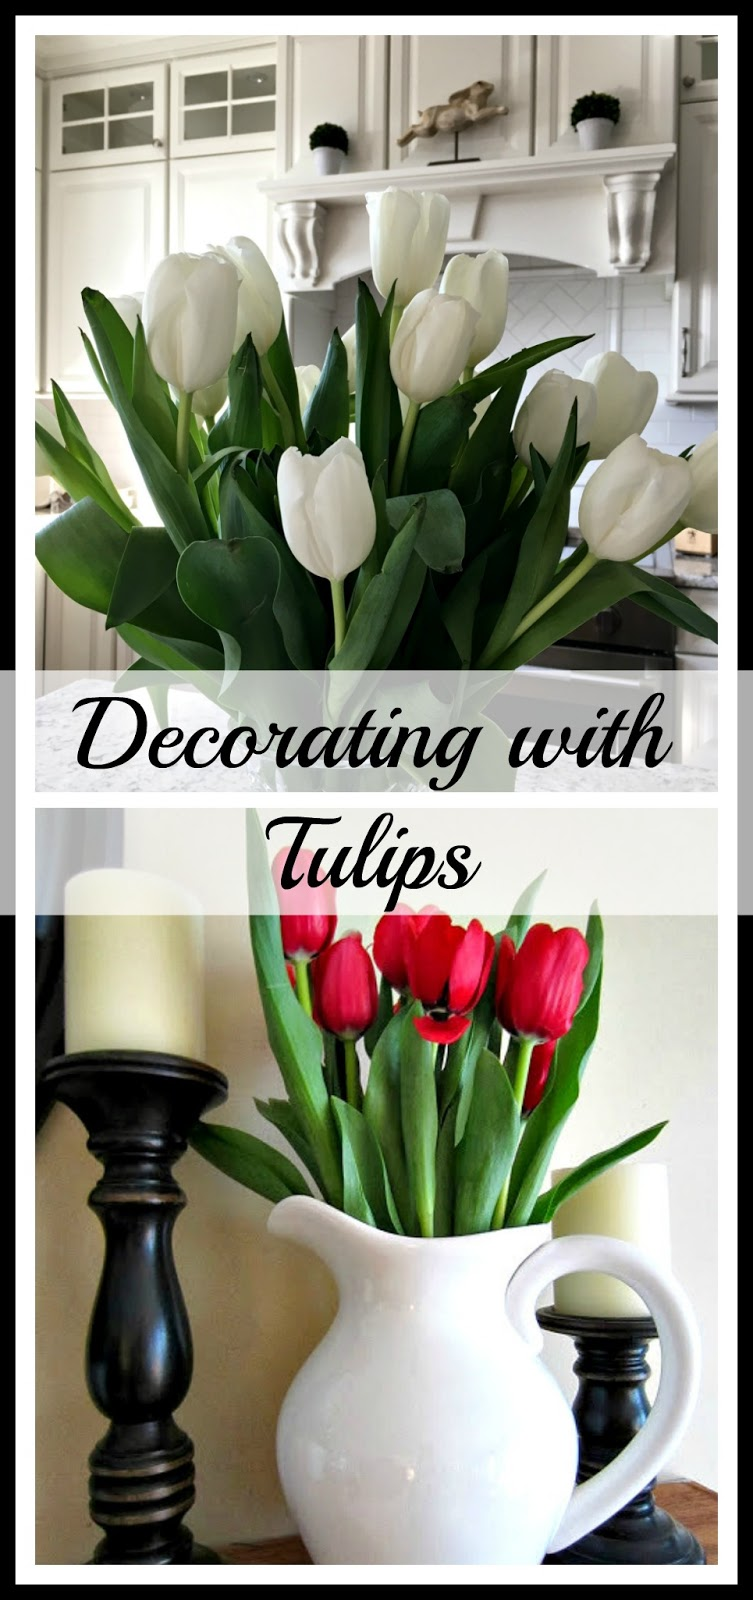 Ways to Decorate with Tulips for Spring